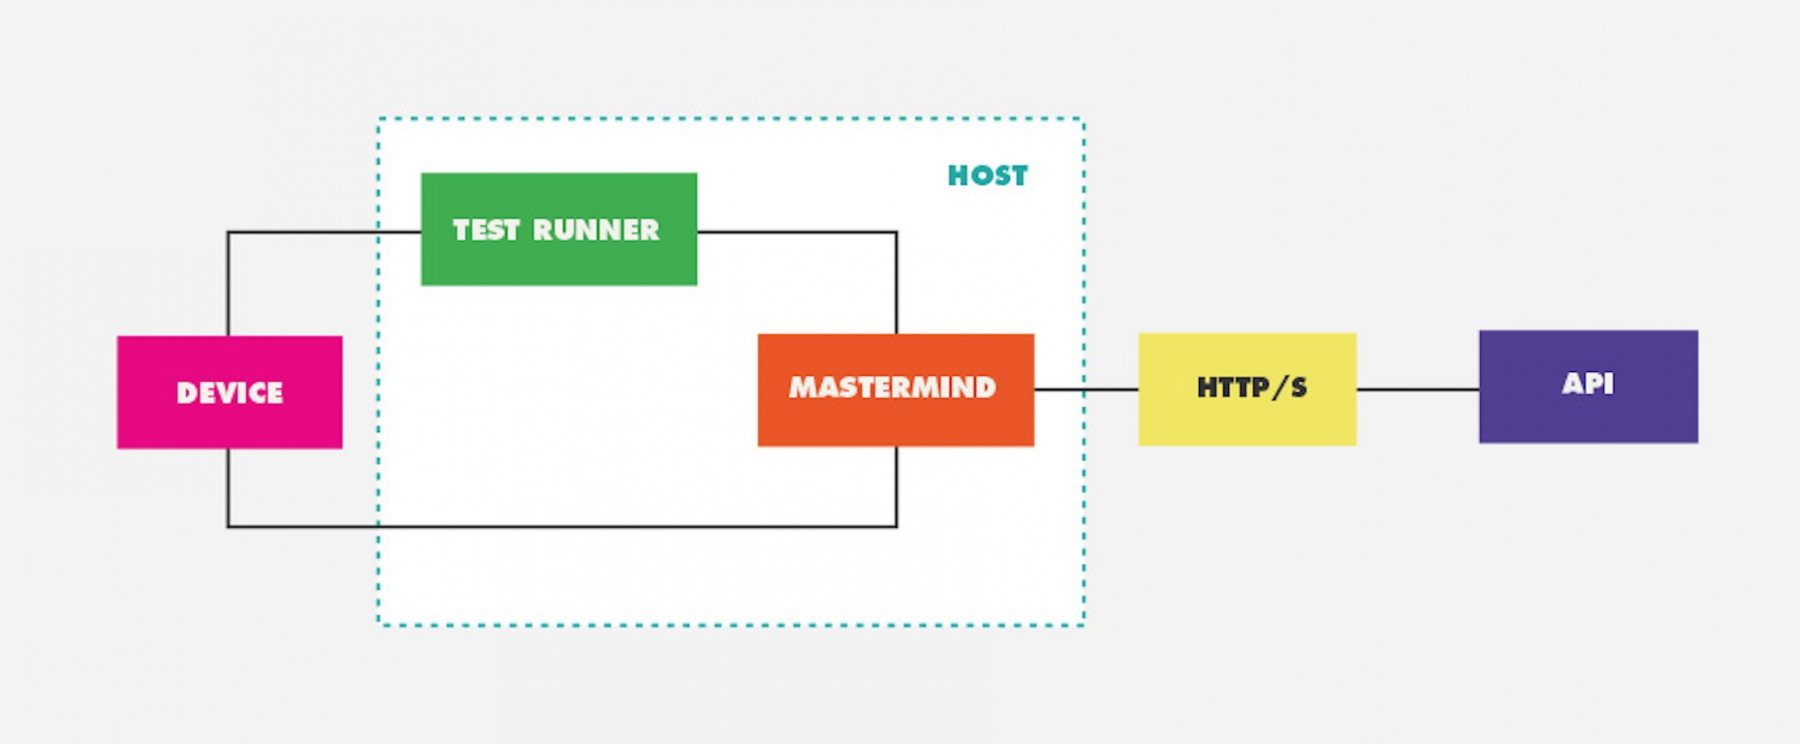 How to Easily Mock-up Back End Systems - ustwo - Medium